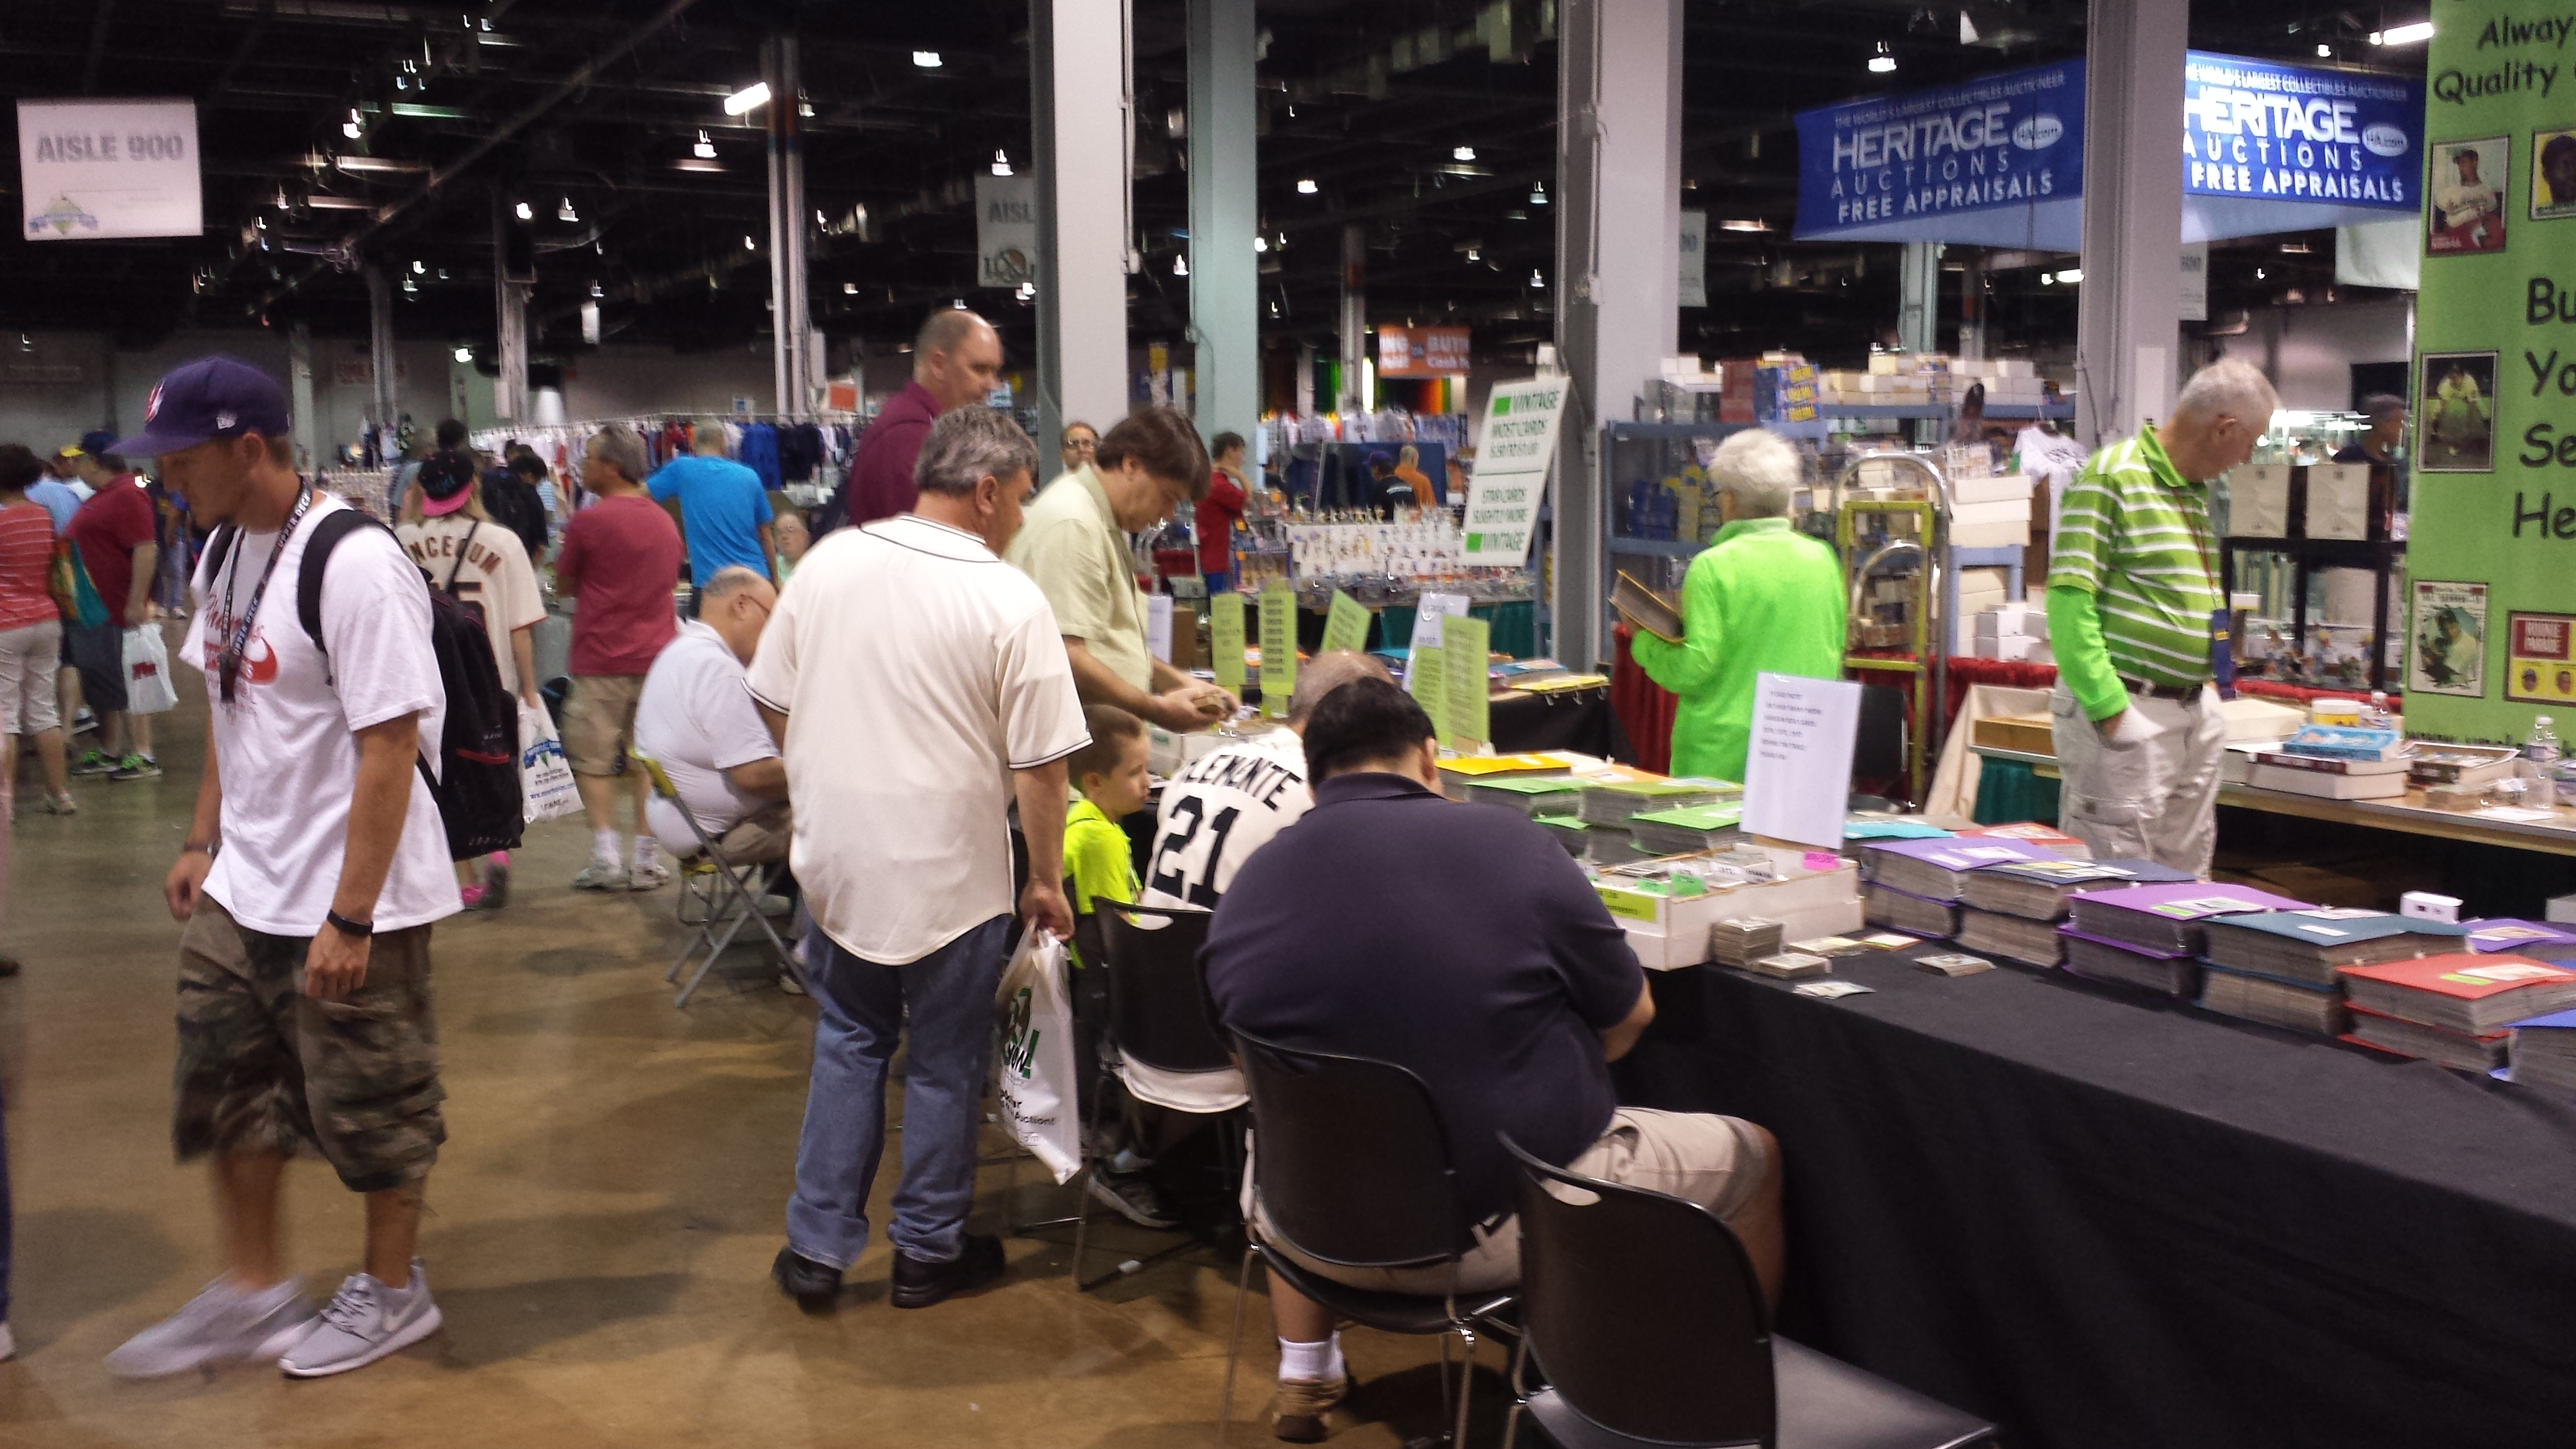 Chicago National Sports Collectors Convention crowd